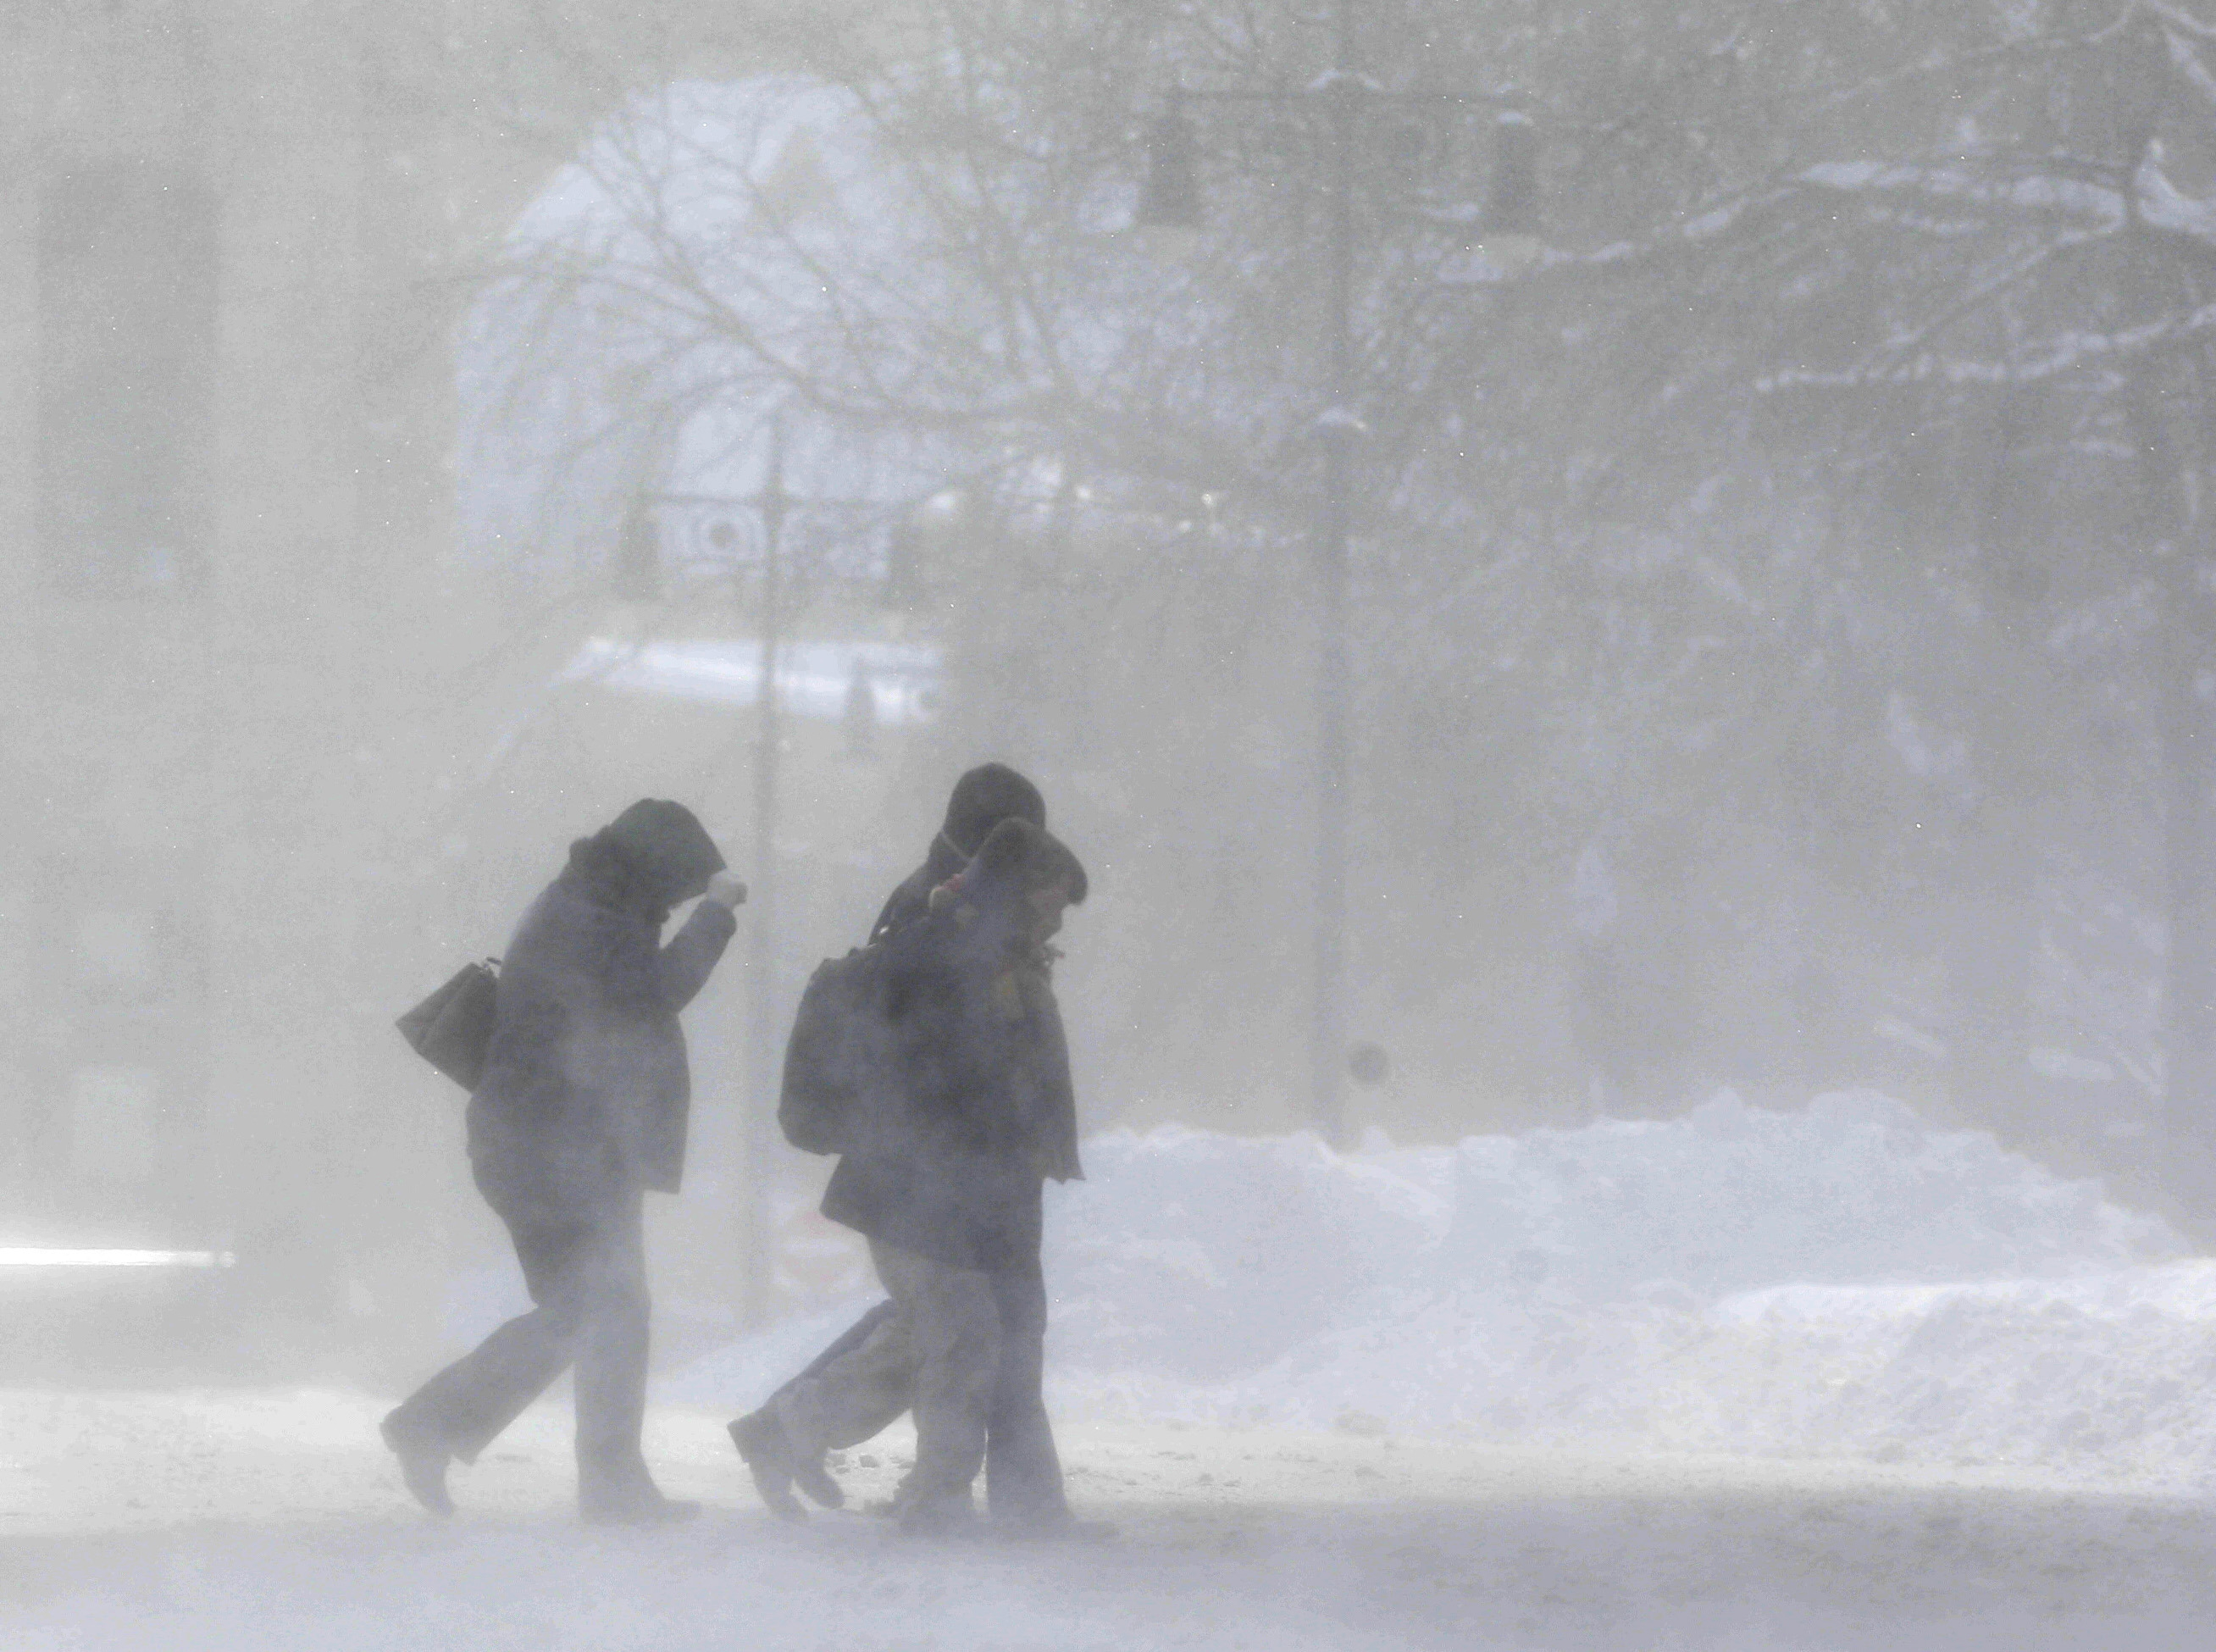 Pedestrians make their way through blowing snow on Friday along a street in Albany, N.Y. parts of upstate got more than 2 feet of snow.